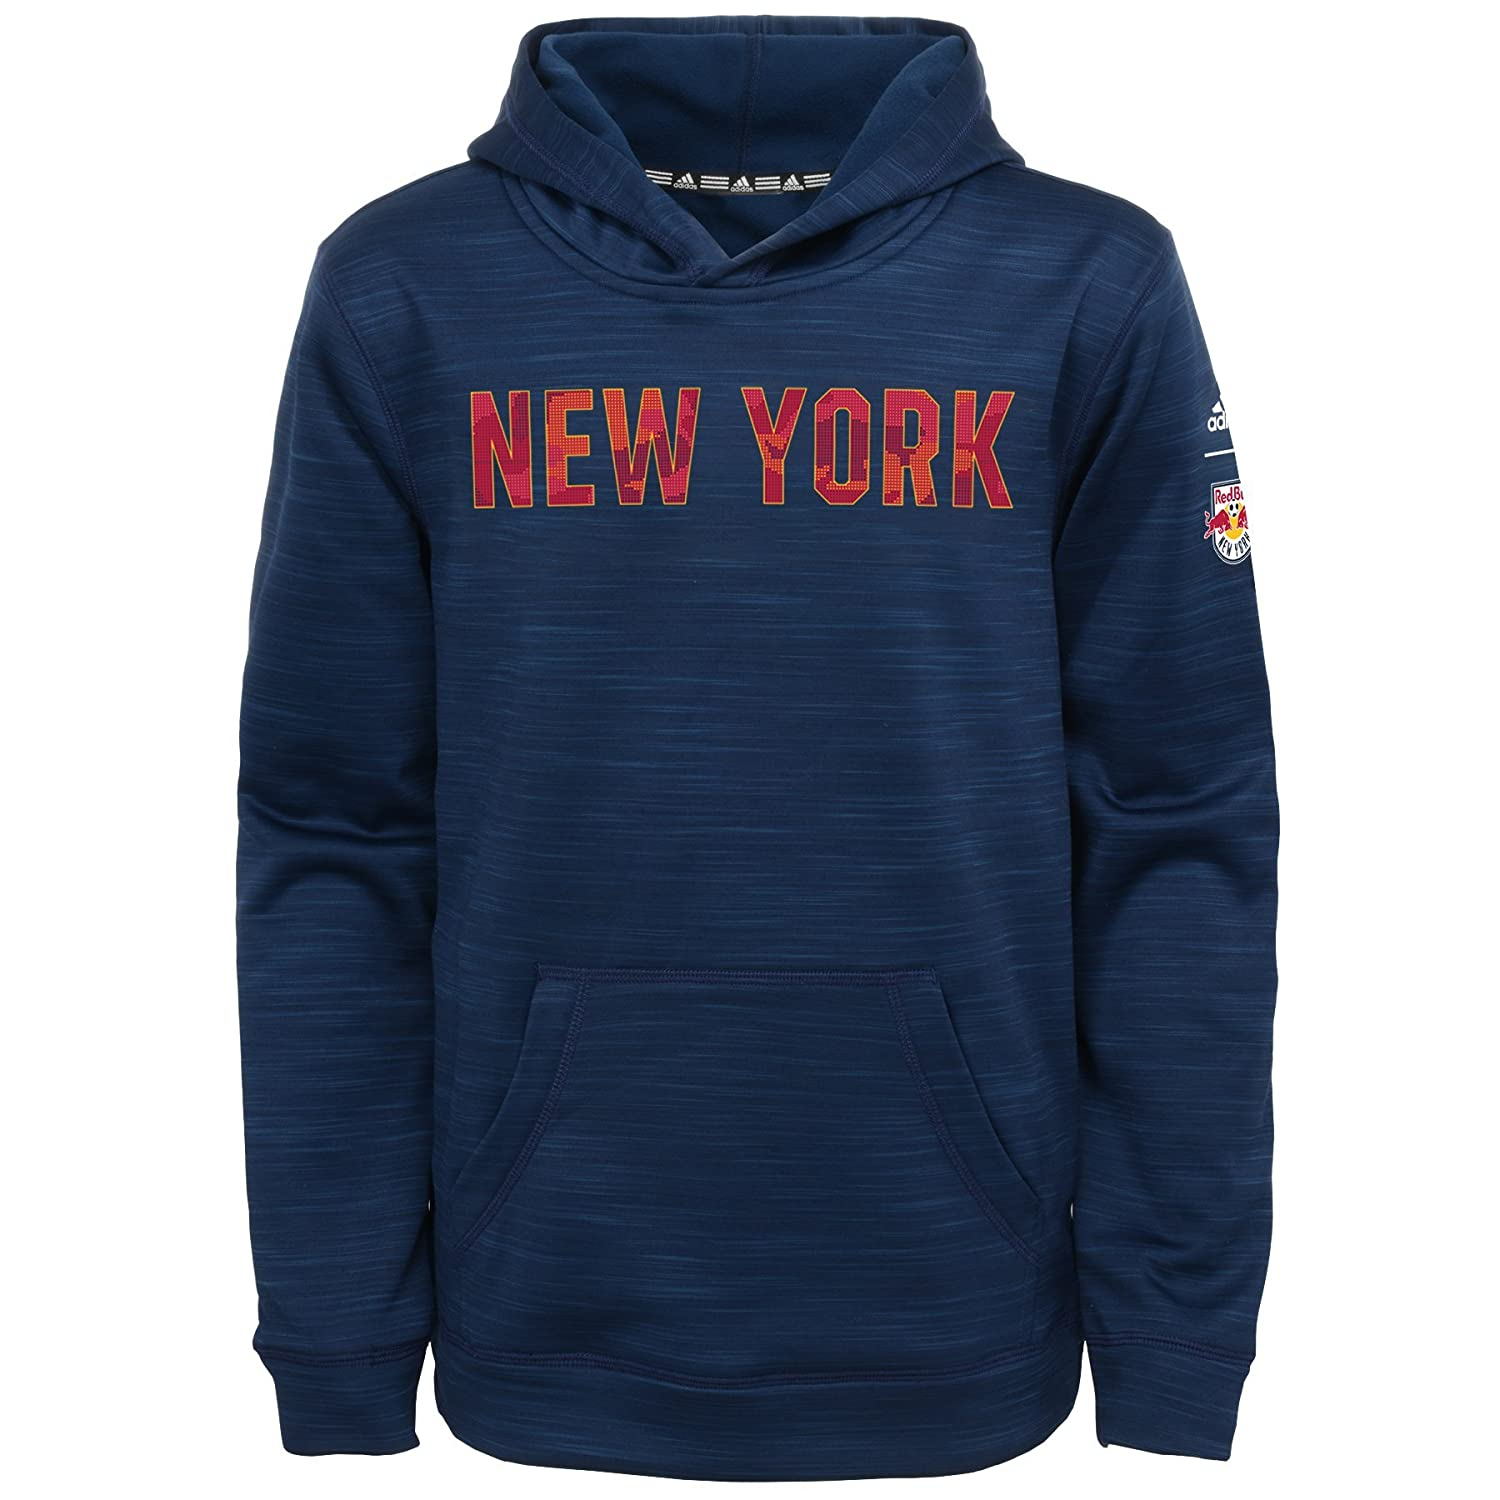 Kids Small Heathered Collegiate Navy 4 MLS by Outerstuff Boys Tactical Block Ultimate Hood